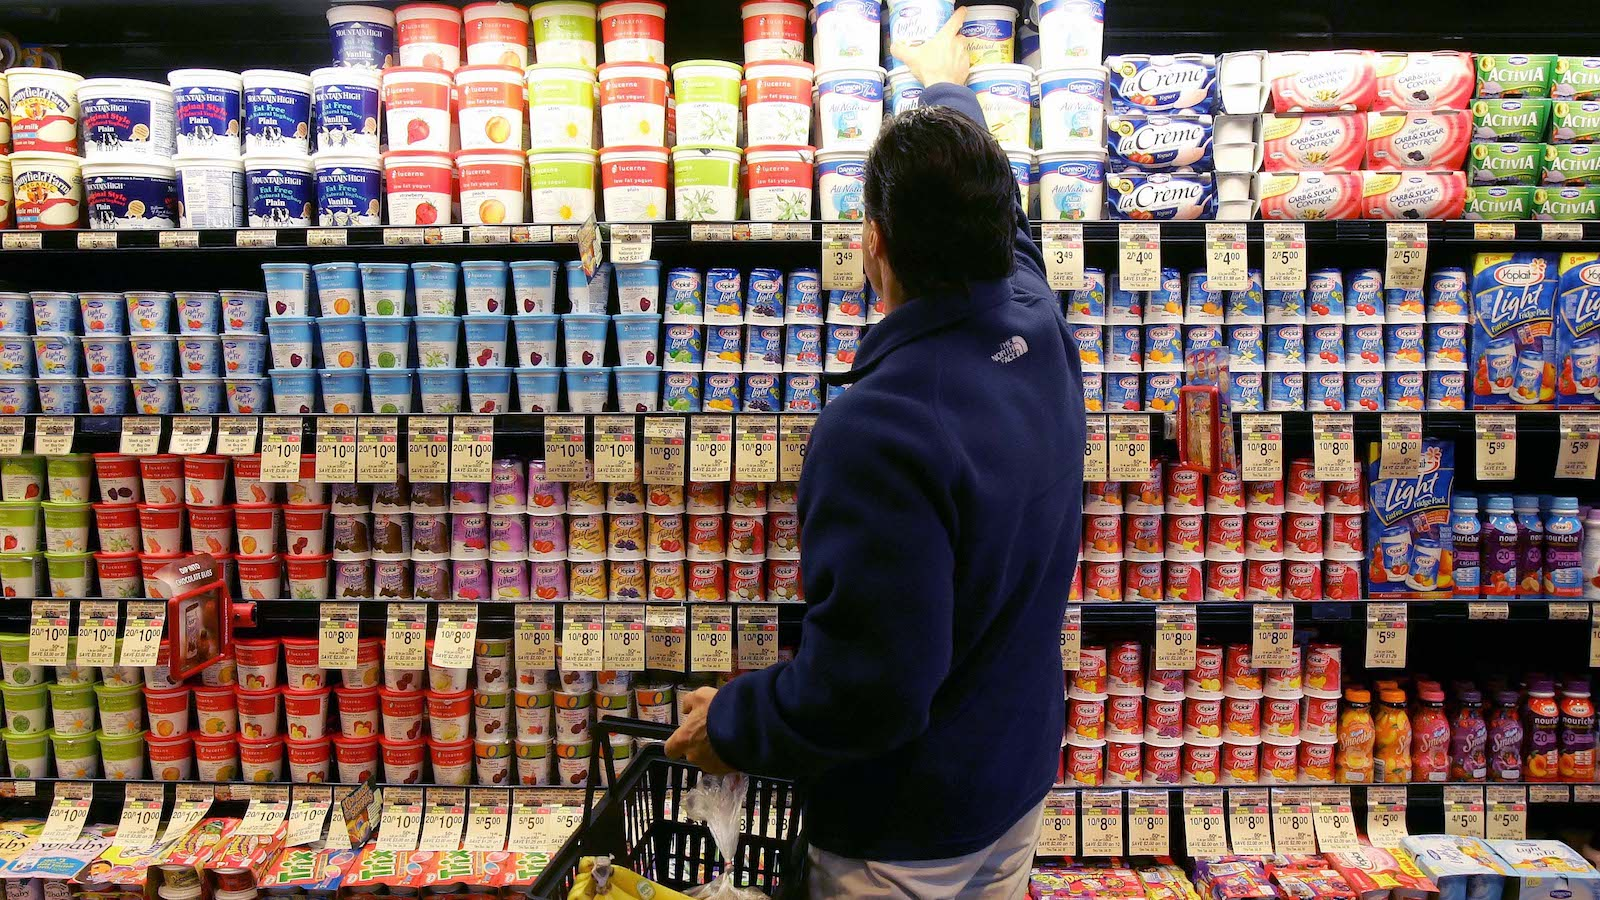 **FILE** A man shops in the yogurt aisle at a Safeway store in San Francisco in this July 18, 2006 file photo. Grocery store chain Safeway Inc. said Thursday its fourth-quarter profit climbed 78 percent on higher revenue and a tax gain. (AP Photo/Jeff Chiu, file)